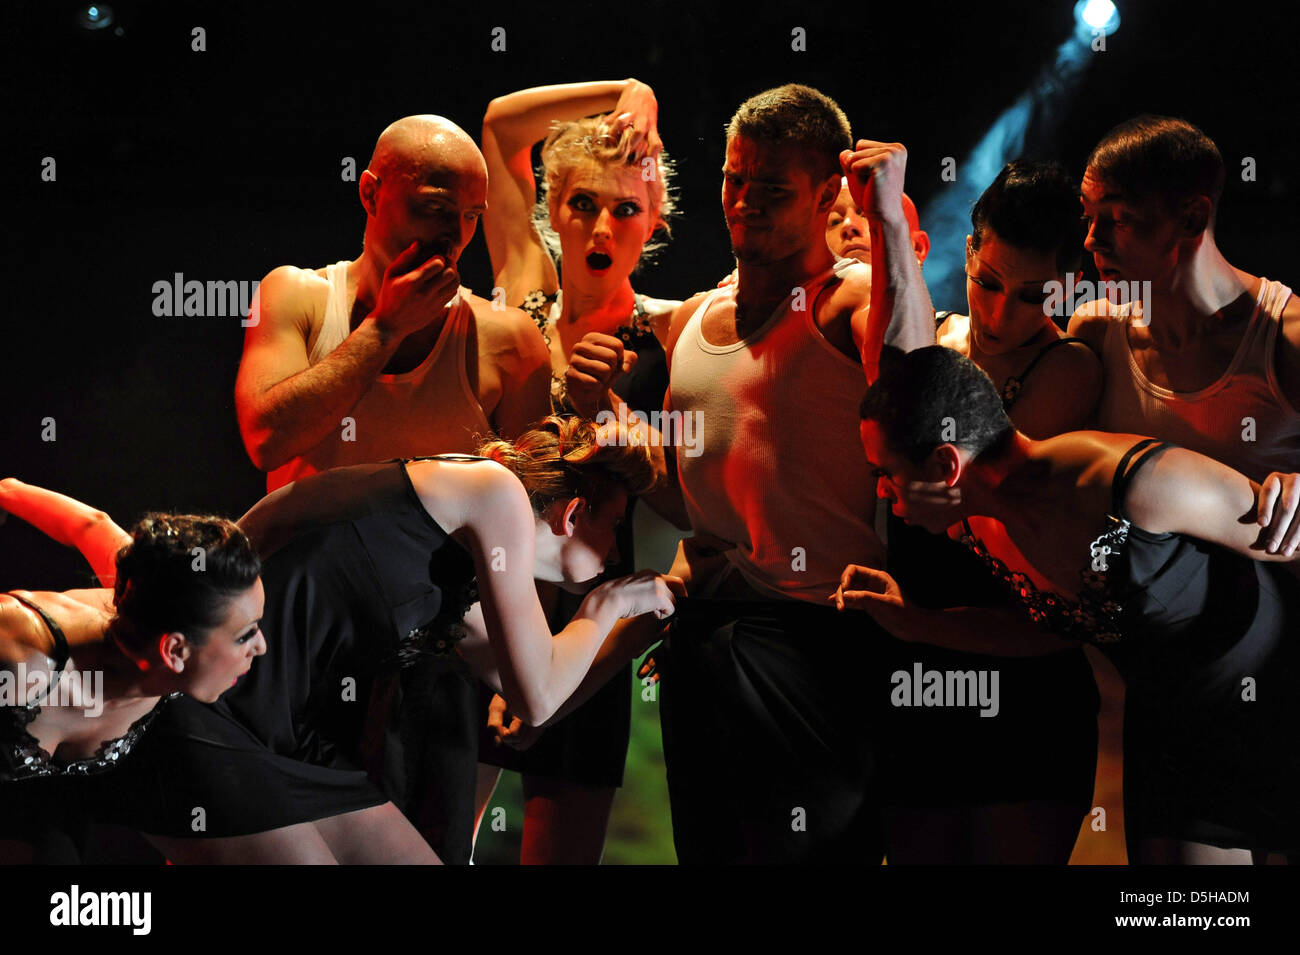 Artistes perform during the premiere of the show '6 & 7: The Art of Dance & Artistic' in Hamburg, - Stock Image